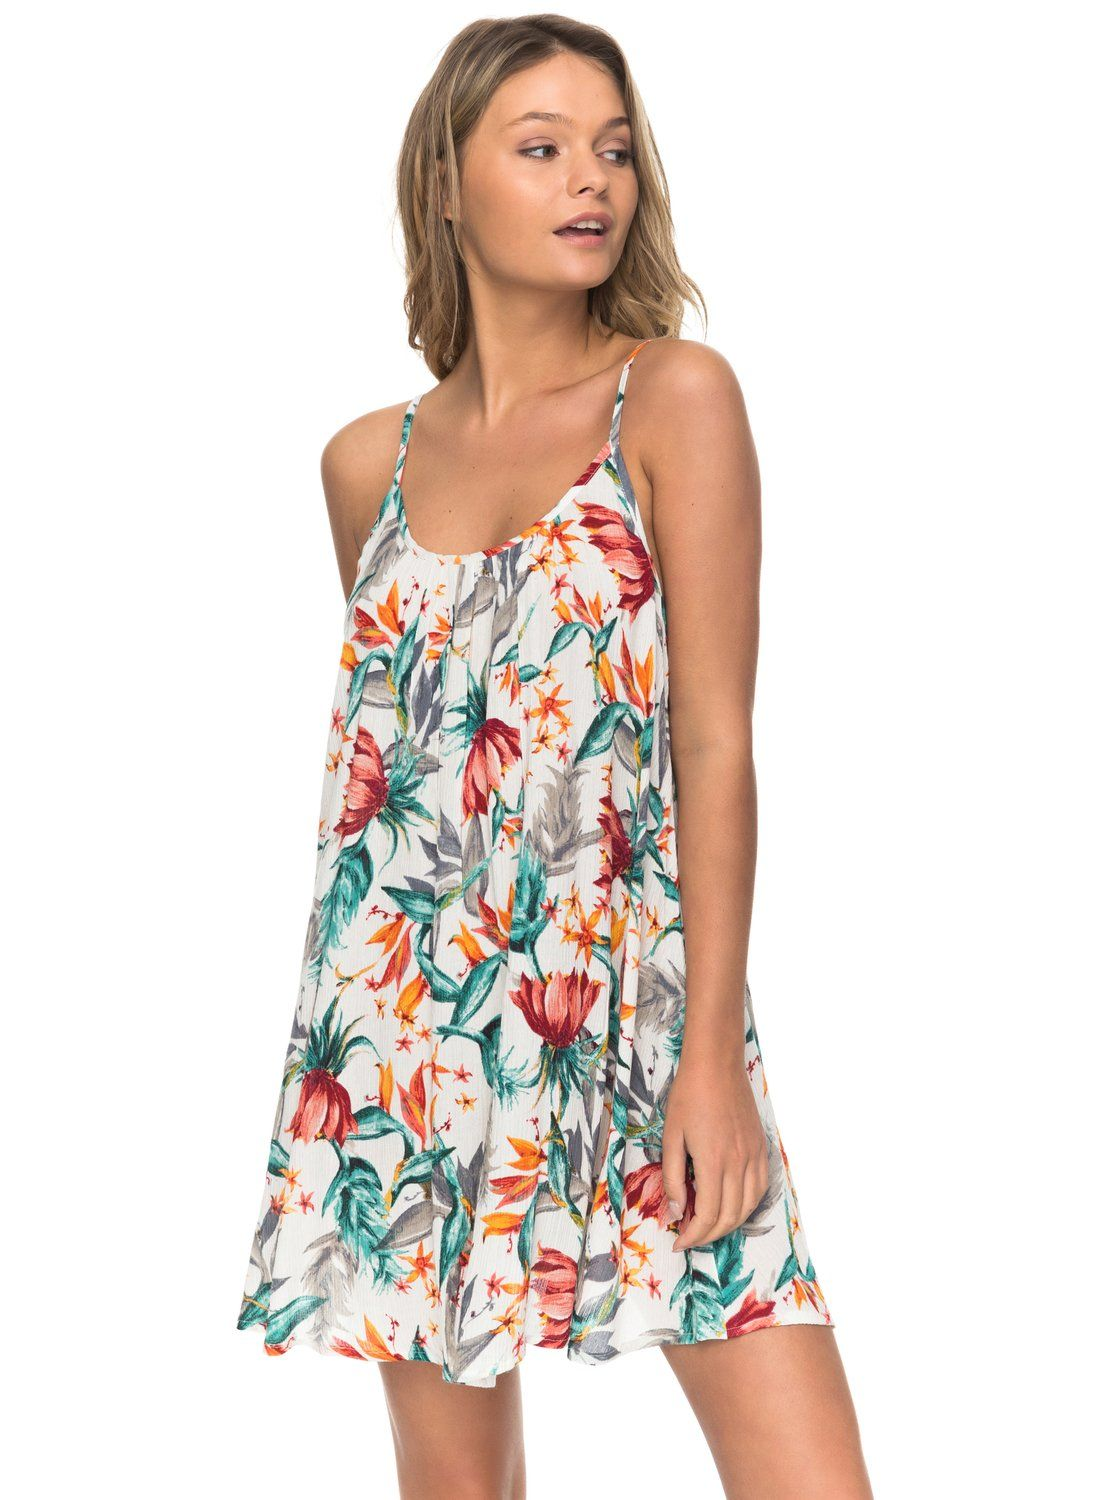 Strappy Summer Dresses